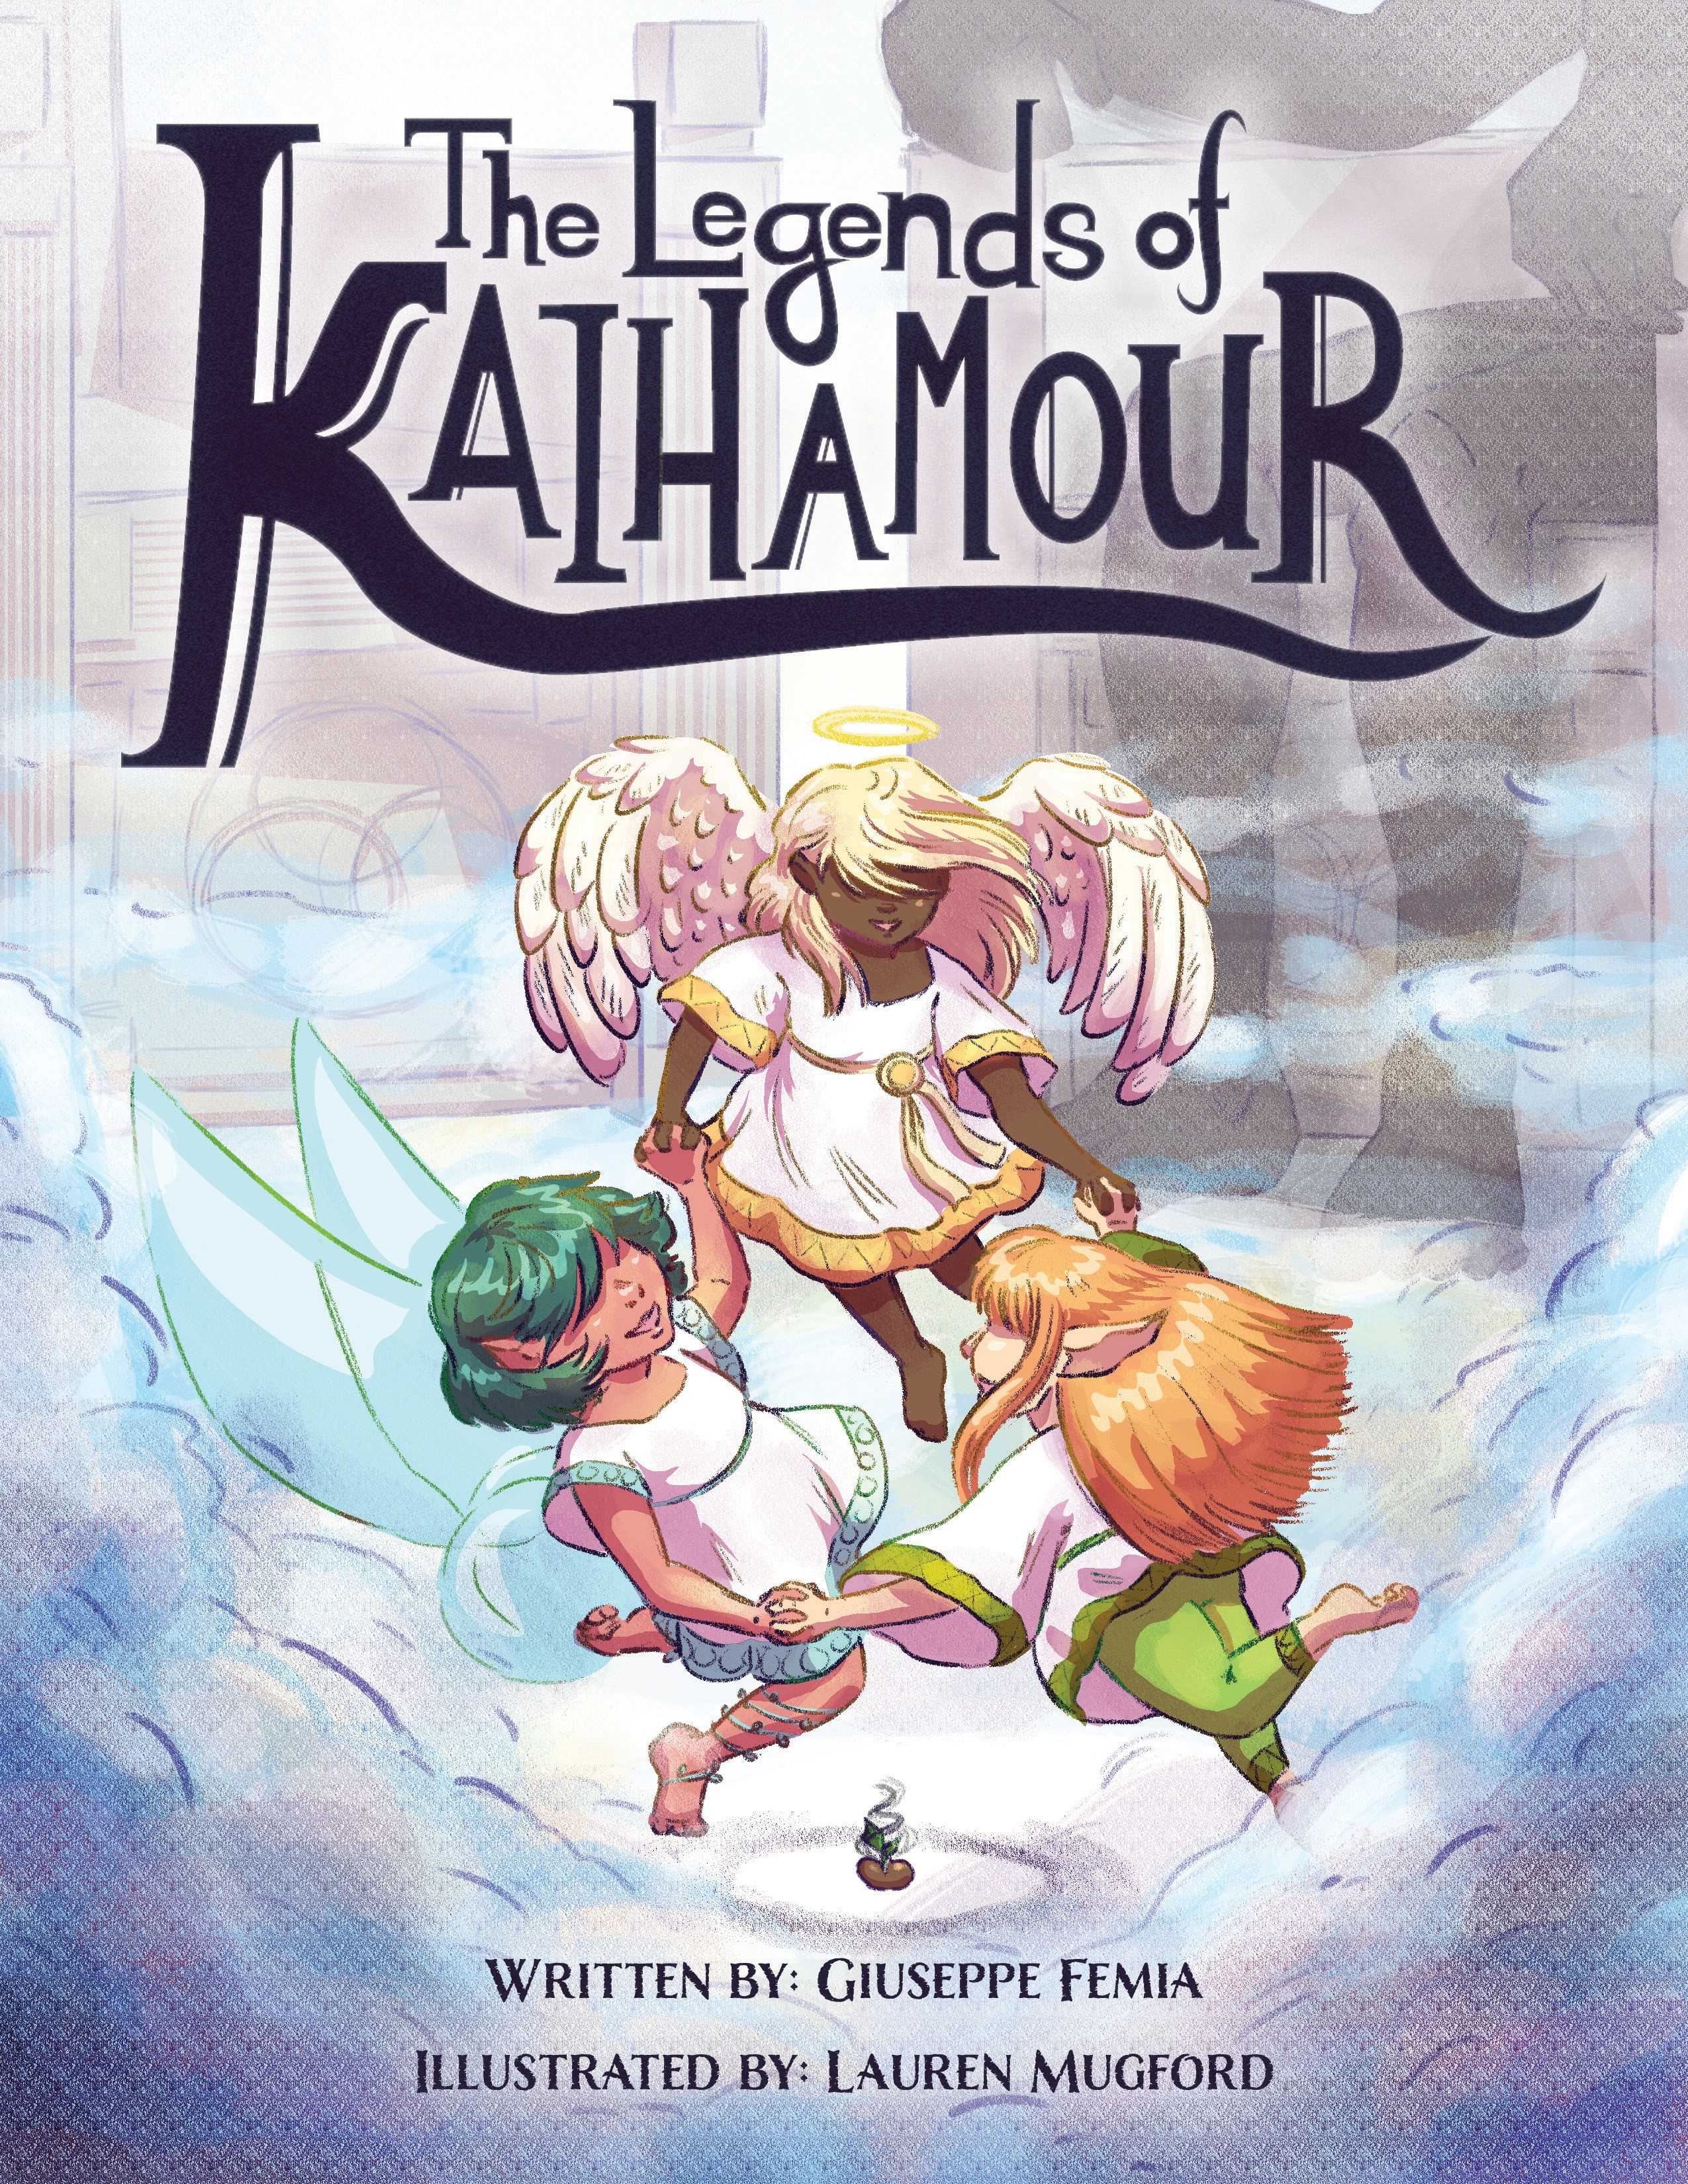 The Legend of Kaihamour